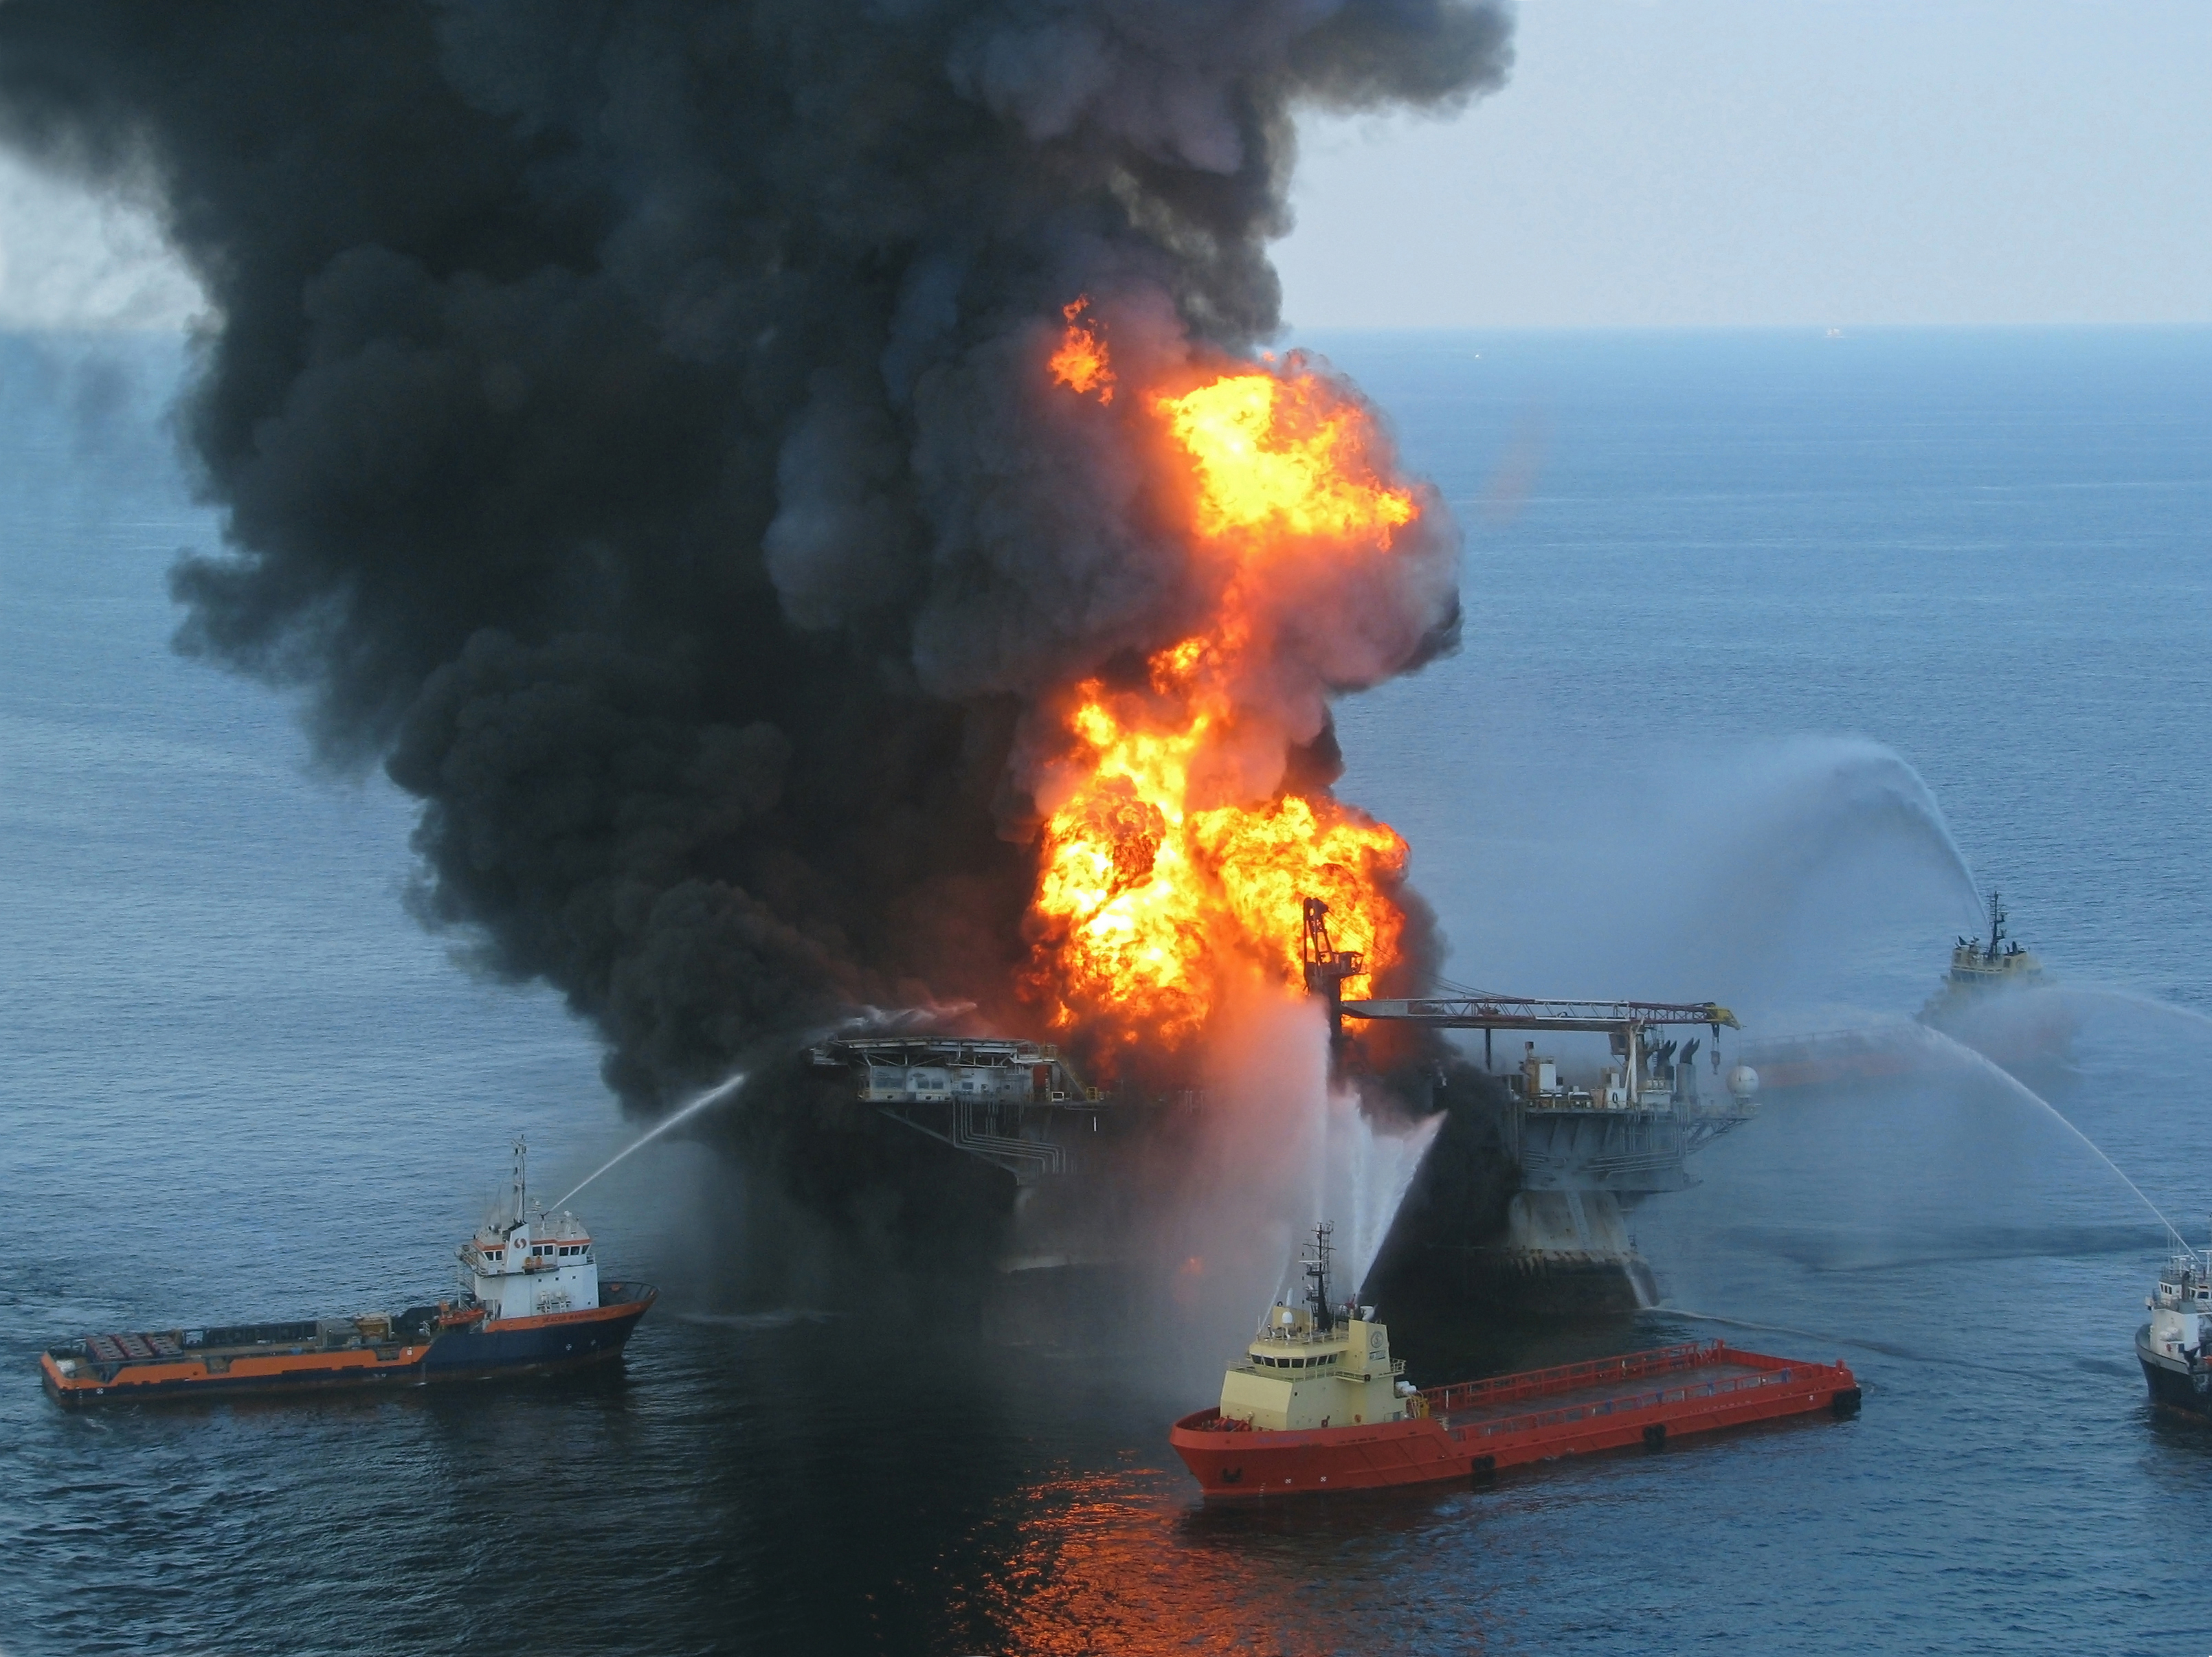 http://upload.wikimedia.org/wikipedia/commons/9/9d/Deepwater_Horizon_offshore_drilling_unit_on_fire_2010.jpg